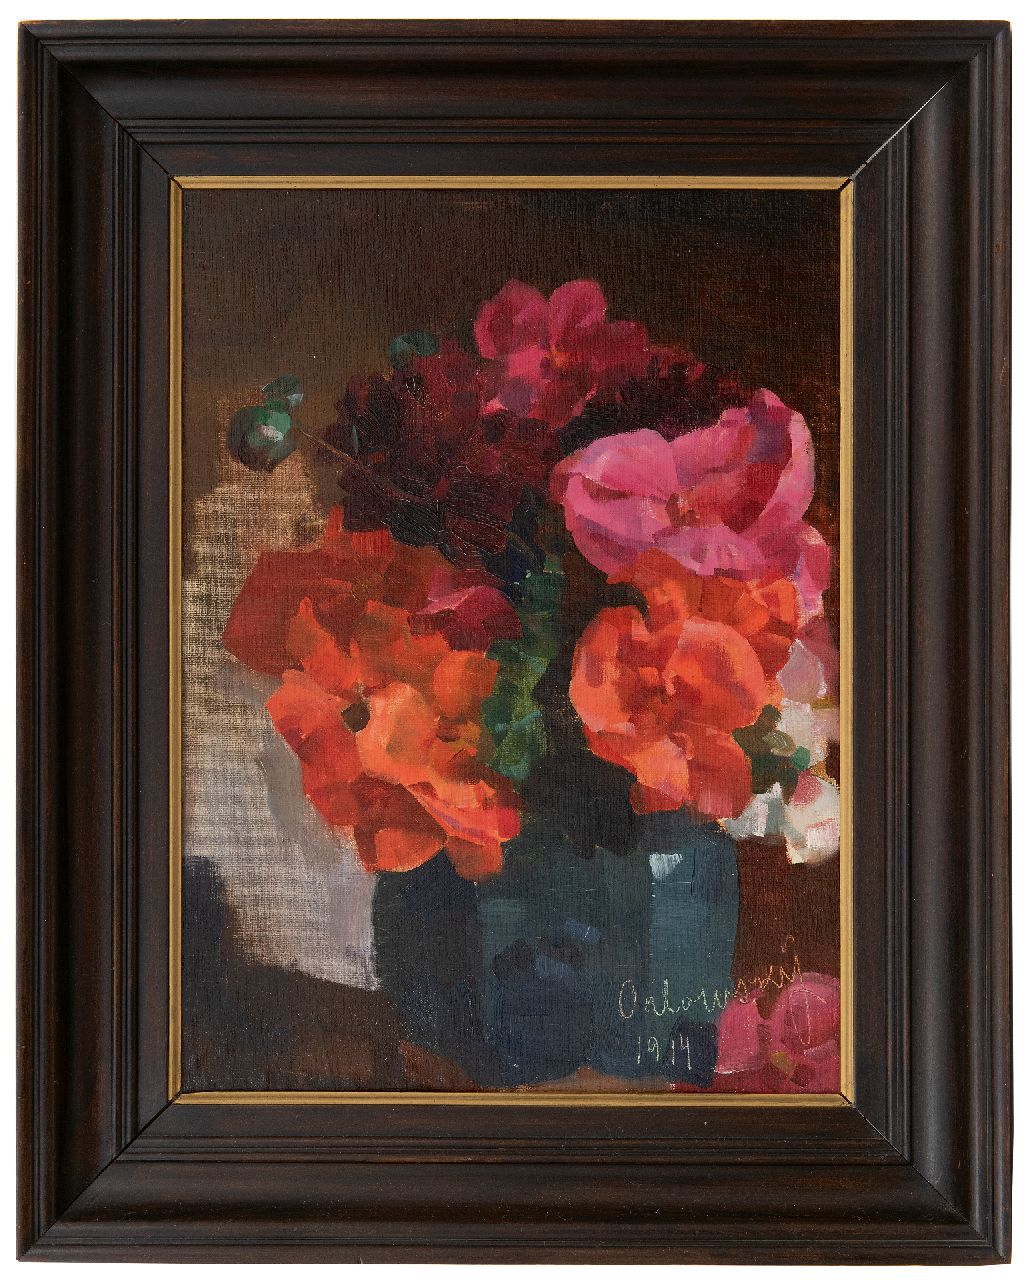 Orlowsky H.O.  | Hans Otto Orlowsky | Paintings offered for sale | Flower still life, oil on canvas on board, laid down on panel 49.1 x 36.2 cm, signed l.r. and dated 1914